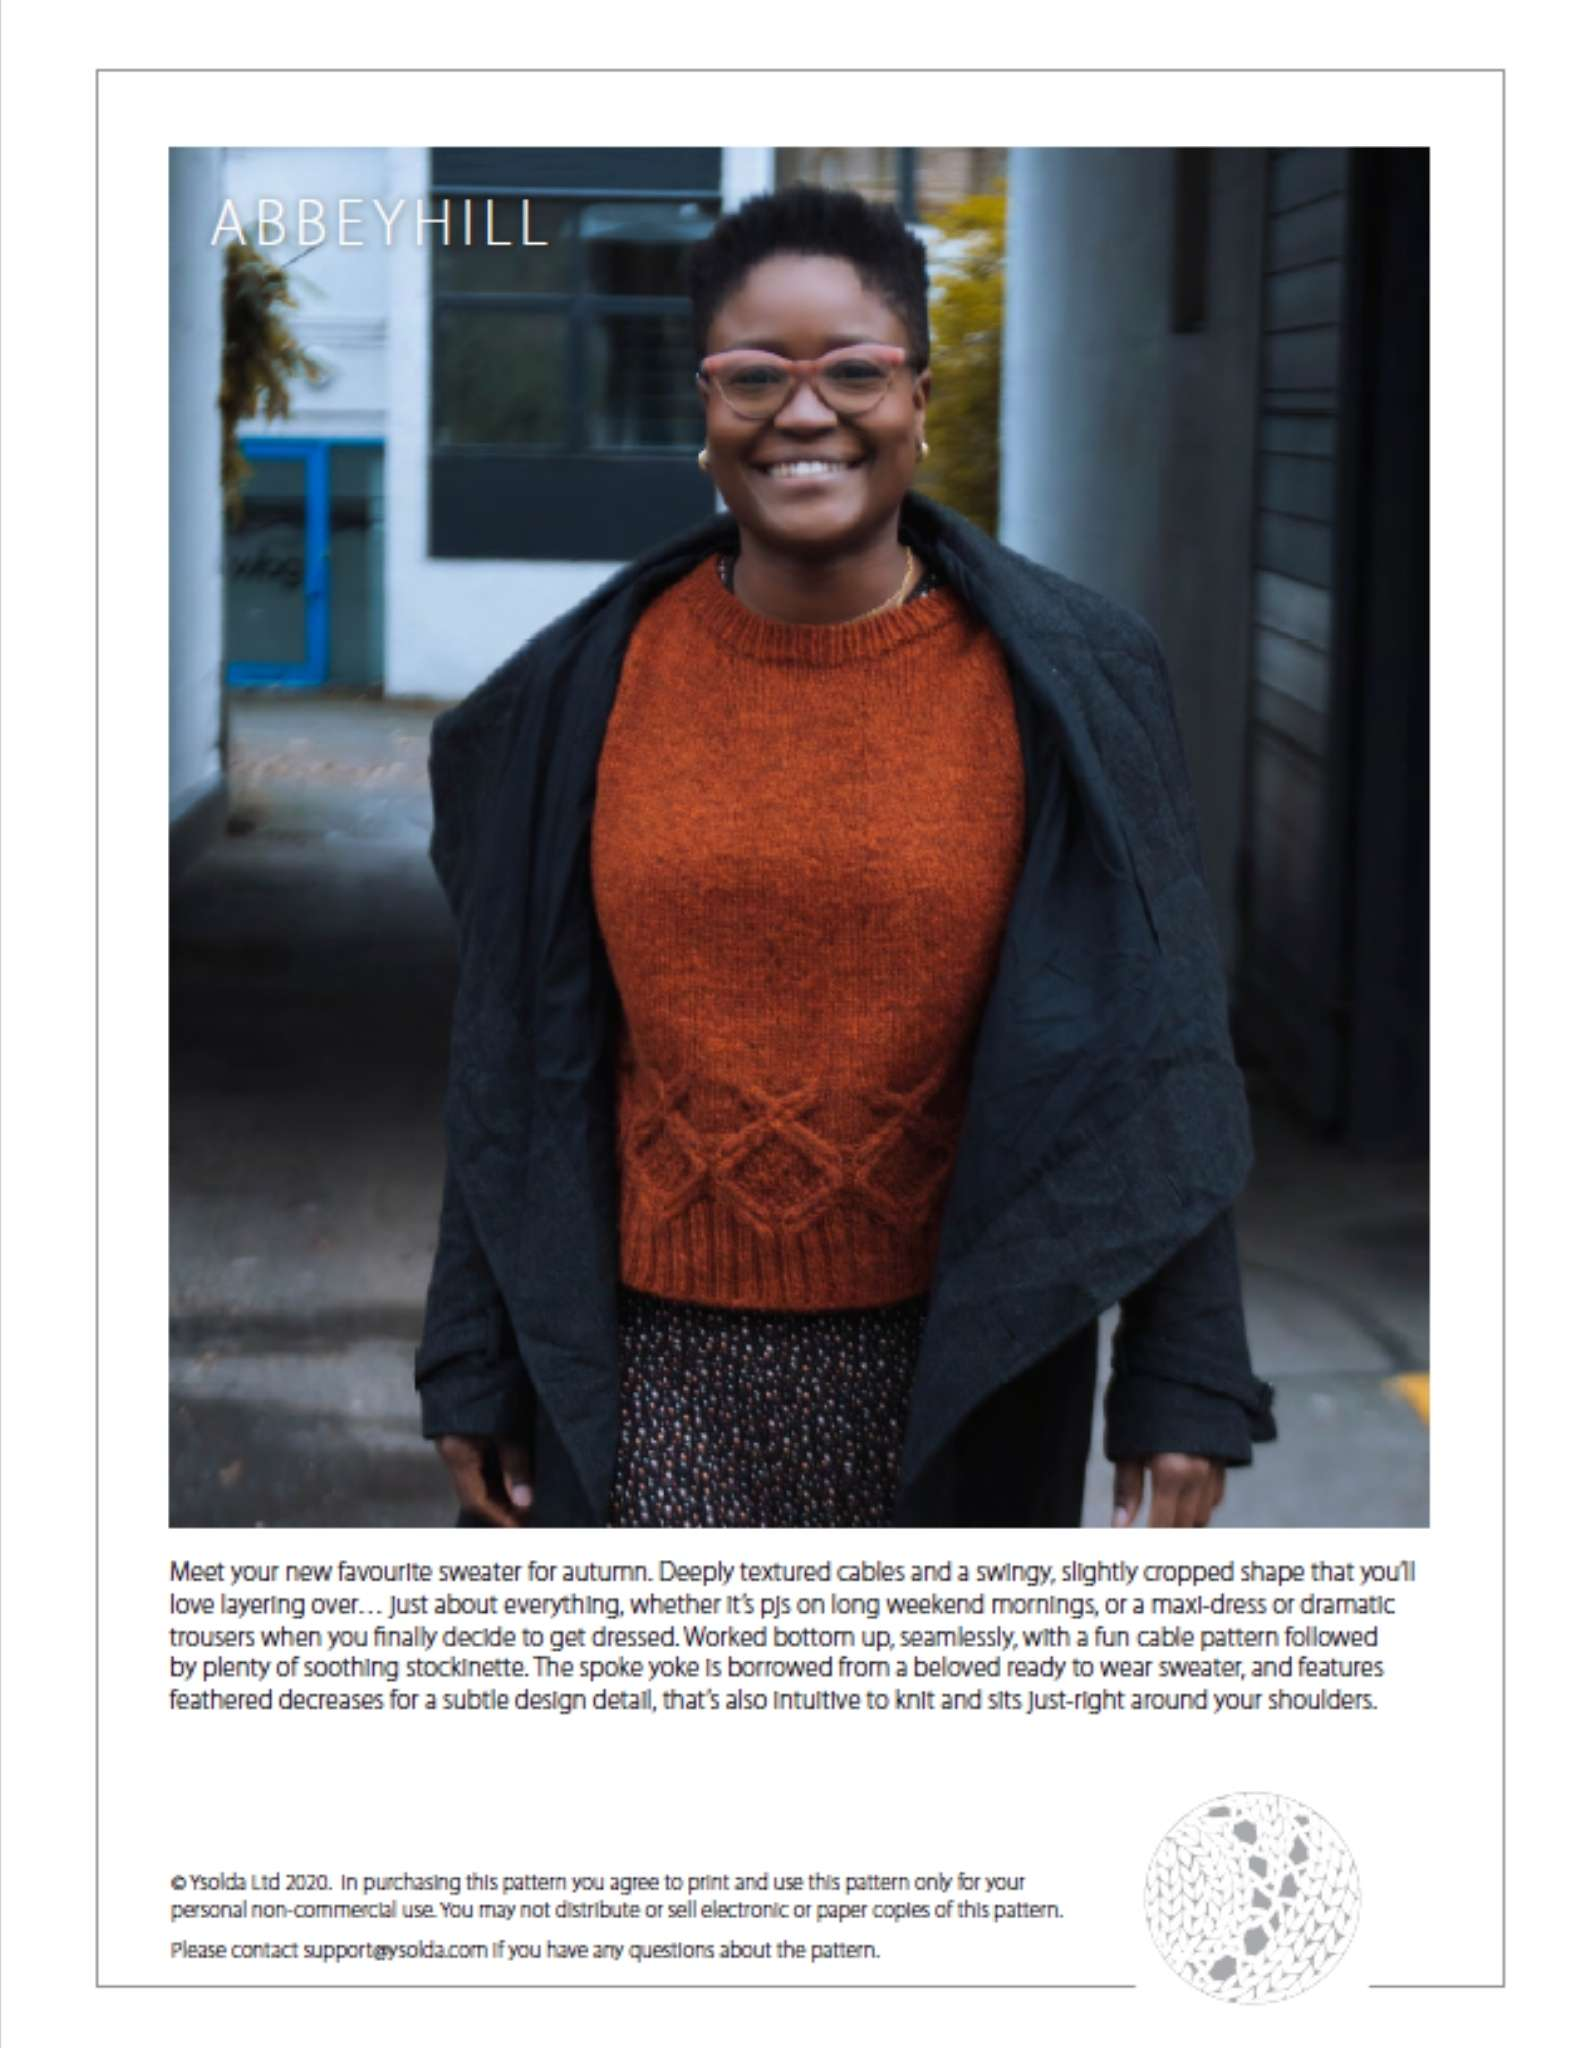 cover page of a pattern showing a black woman wearing an orange sweater, walking towards the camera. She wears a dark jacket that is open at the front and is smiling. Text describing the sweater design is shown underneath.